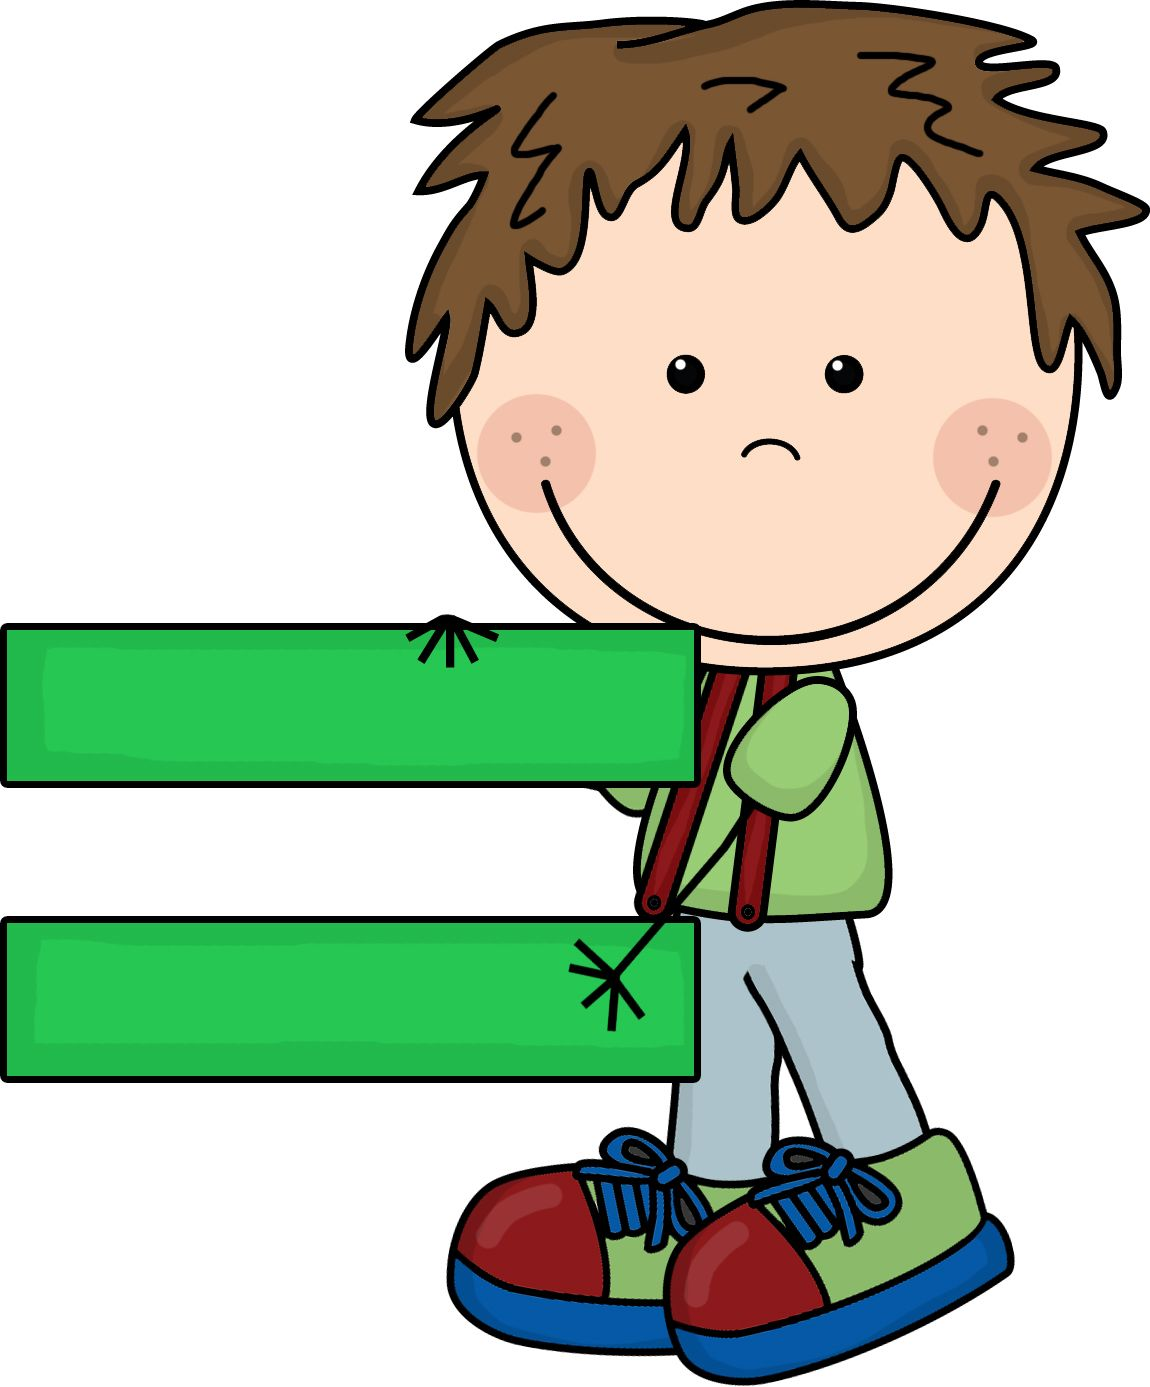 Addition clipart boy, Addition boy Transparent FREE for.